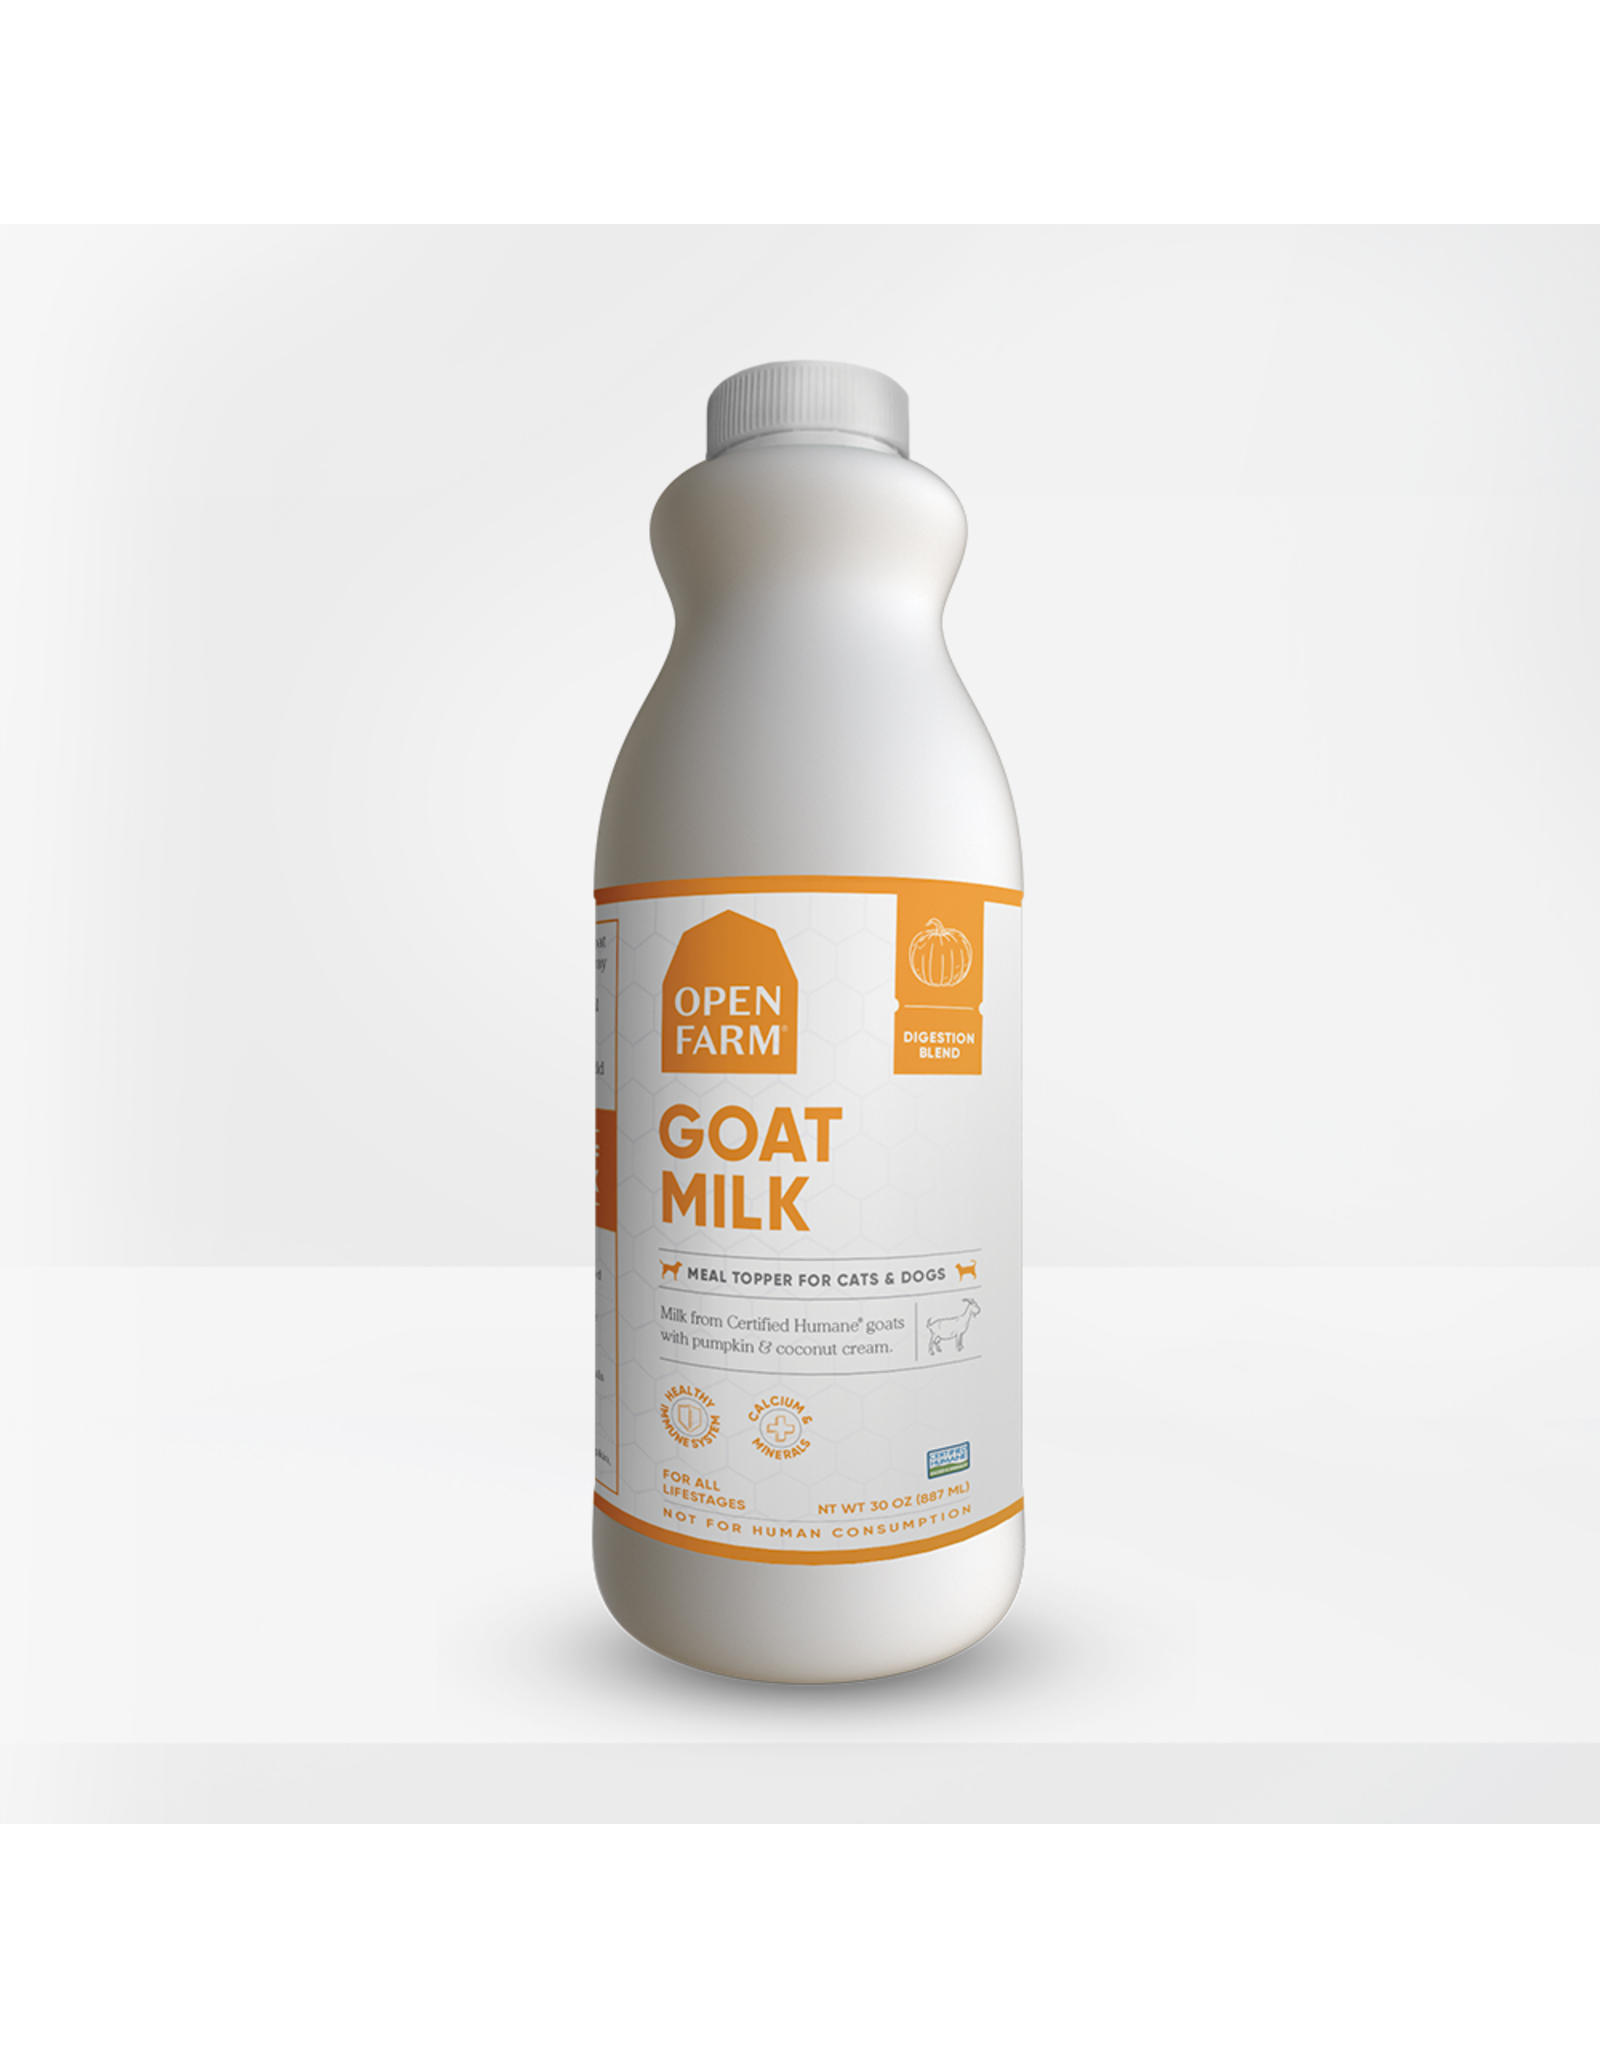 Open Farm OPEN FARM GOAT MILK DIGESTION BLEND 30OZ